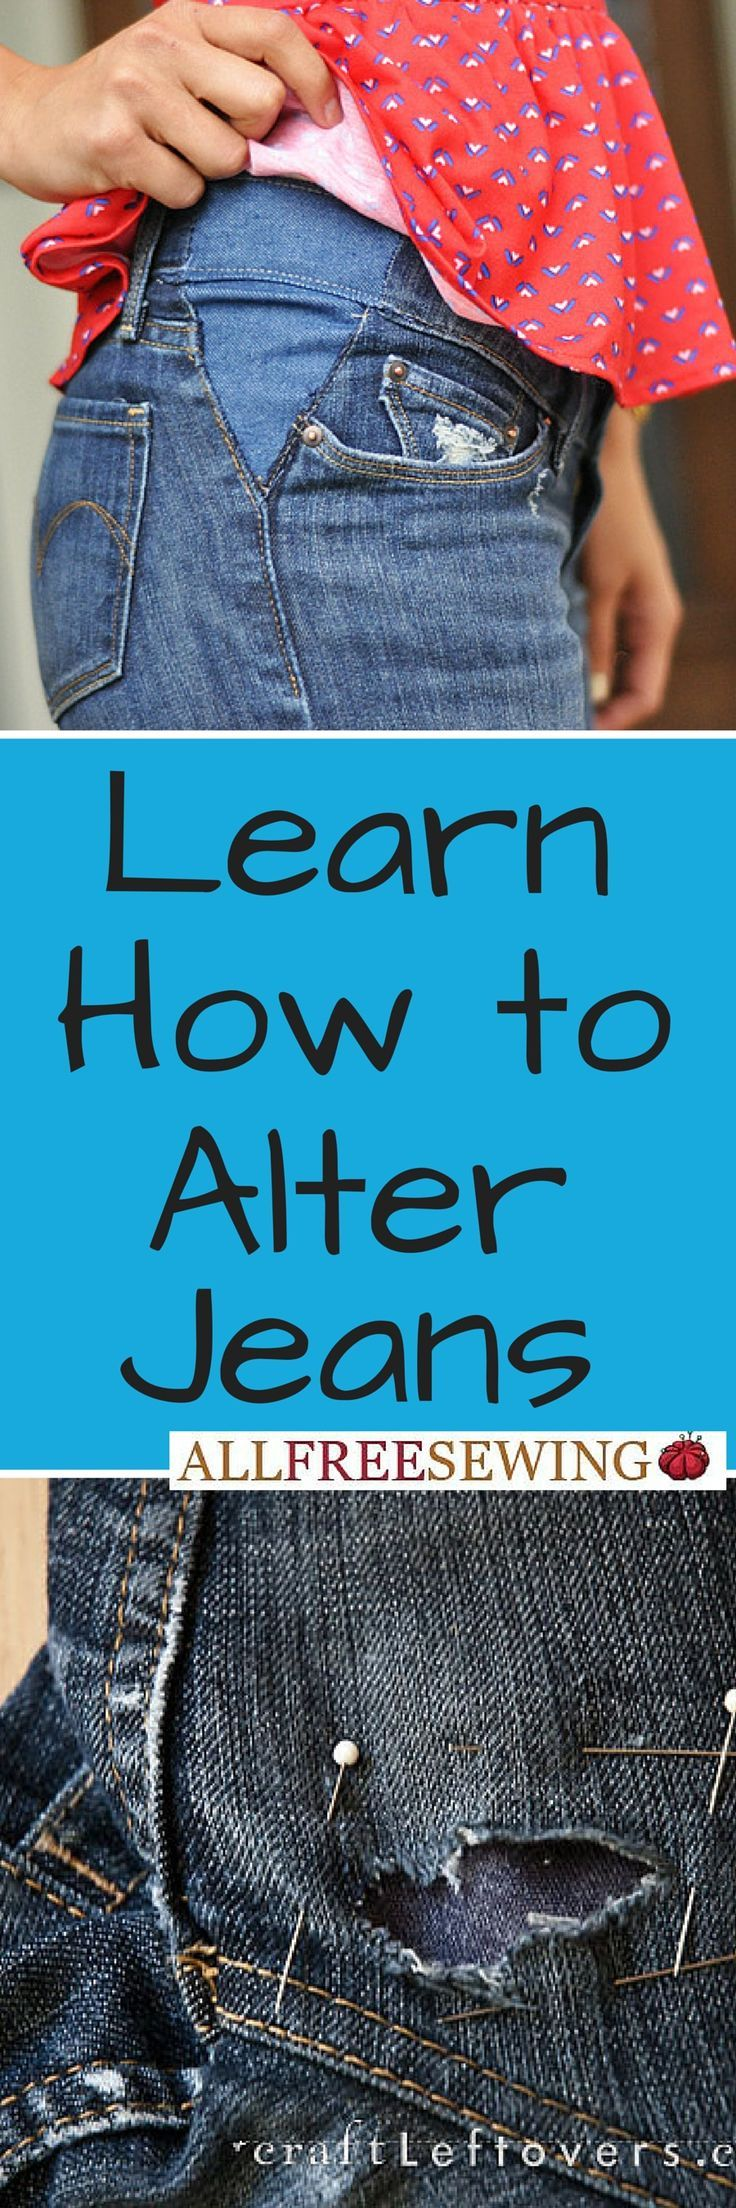 awesome Learn how to alter jeans and other denim pieces on AllFreeSewing.com...